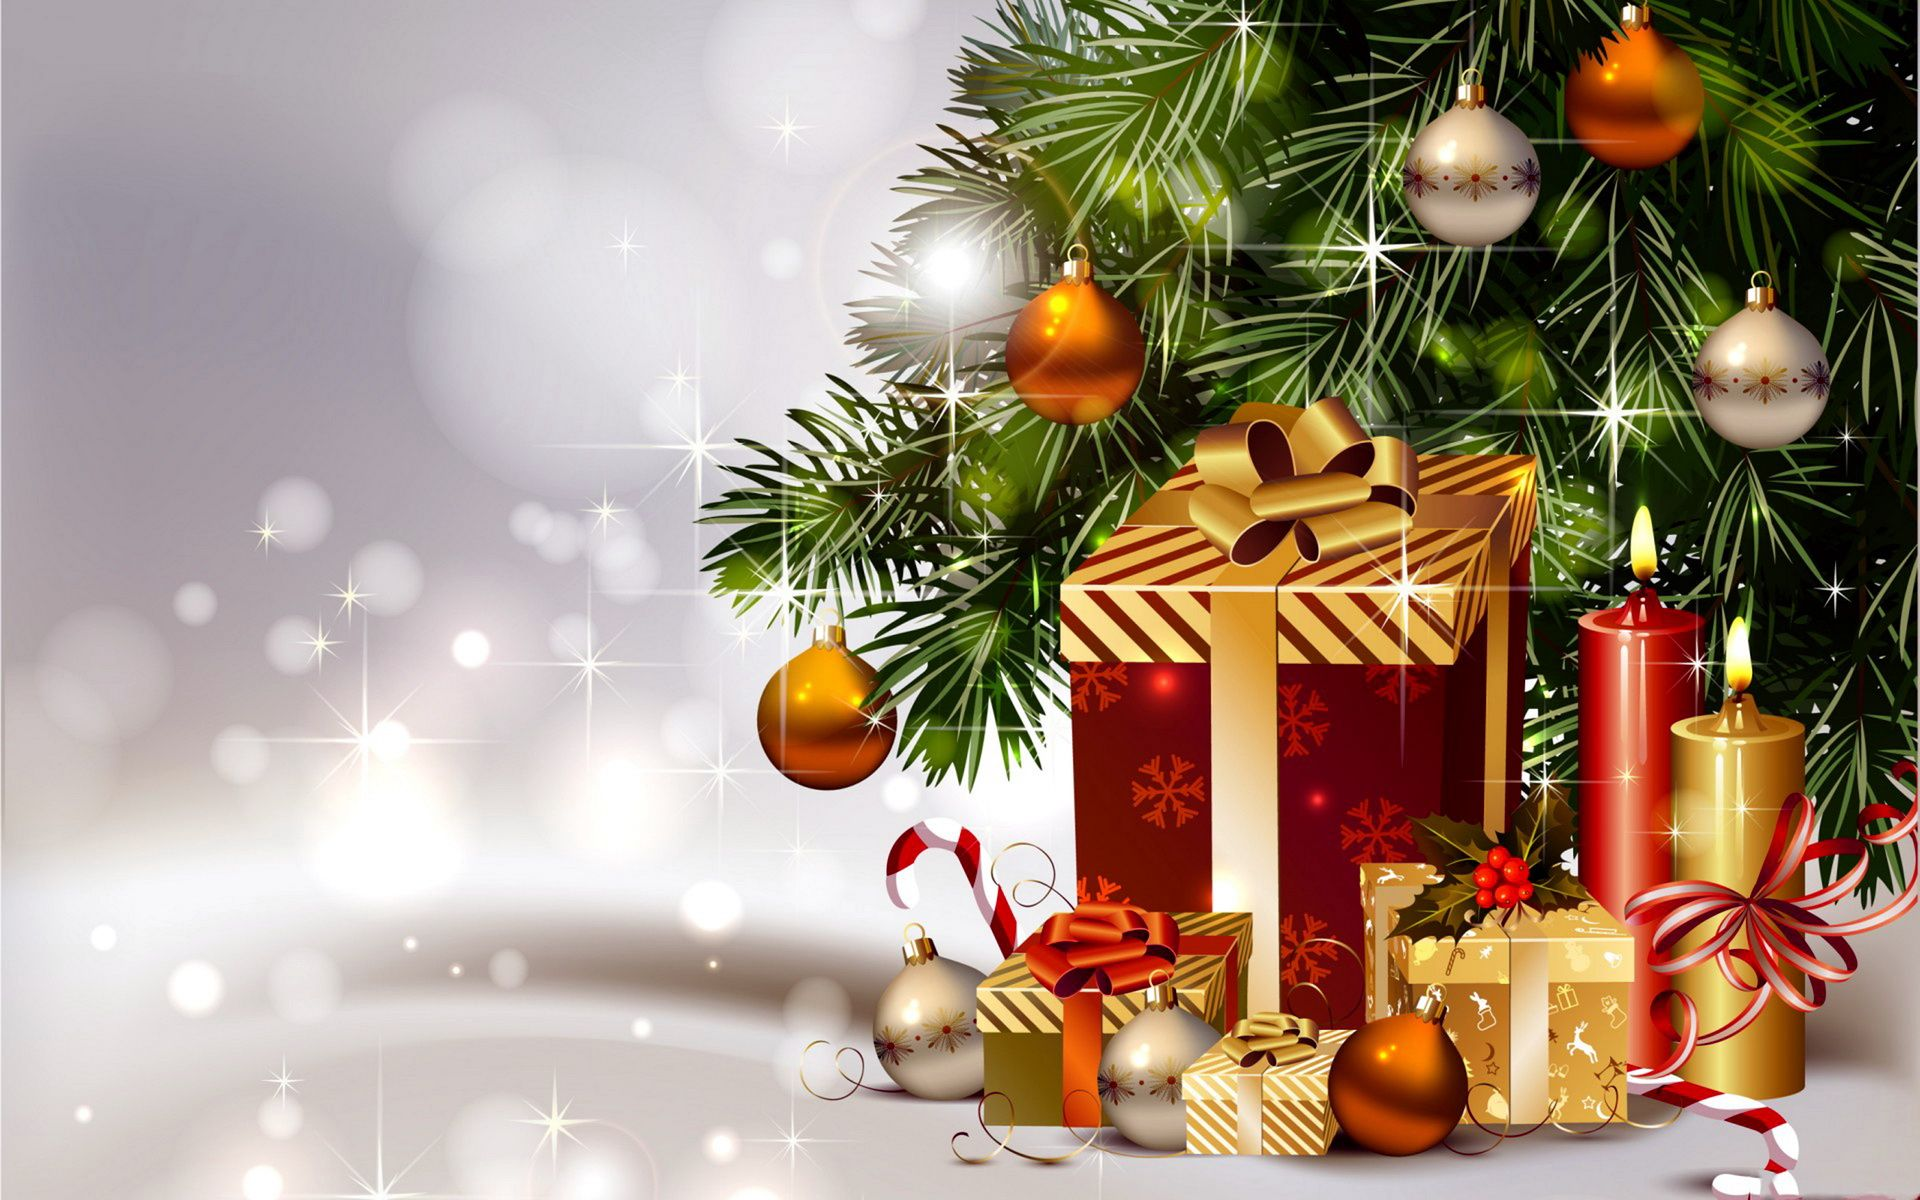 Merry Christmas Images 2019 75 Free Christmas Pictures Photos Pics Christmas Tree Wallpaper Christmas Tree With Gifts Merry Christmas Wallpaper